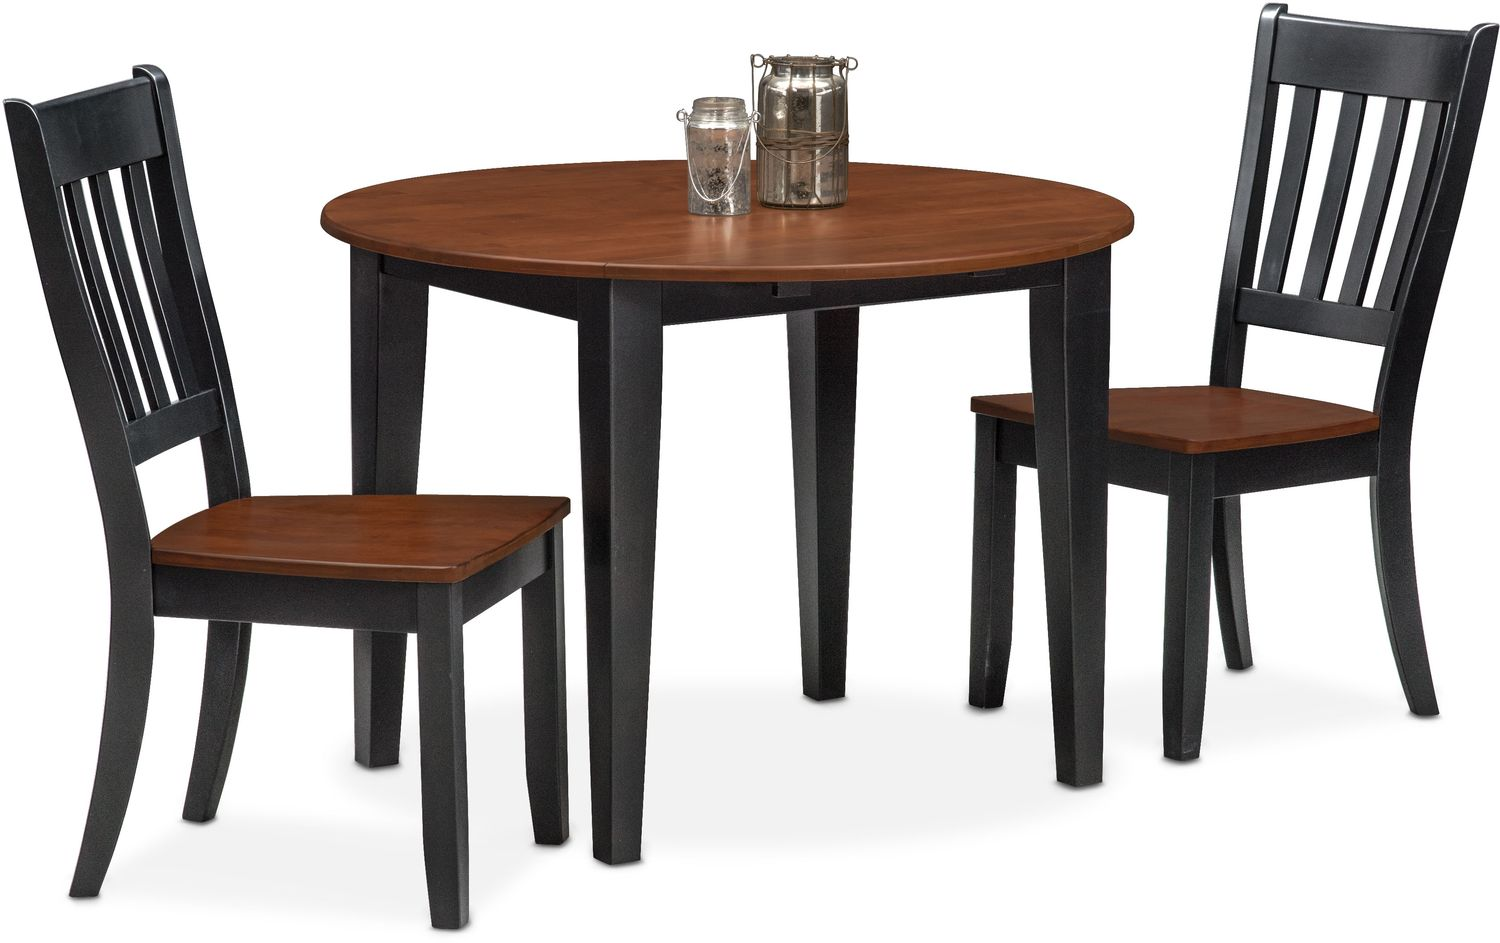 Nantucket drop leaf table and 2 slat back chairs black for Black dining table with leaf